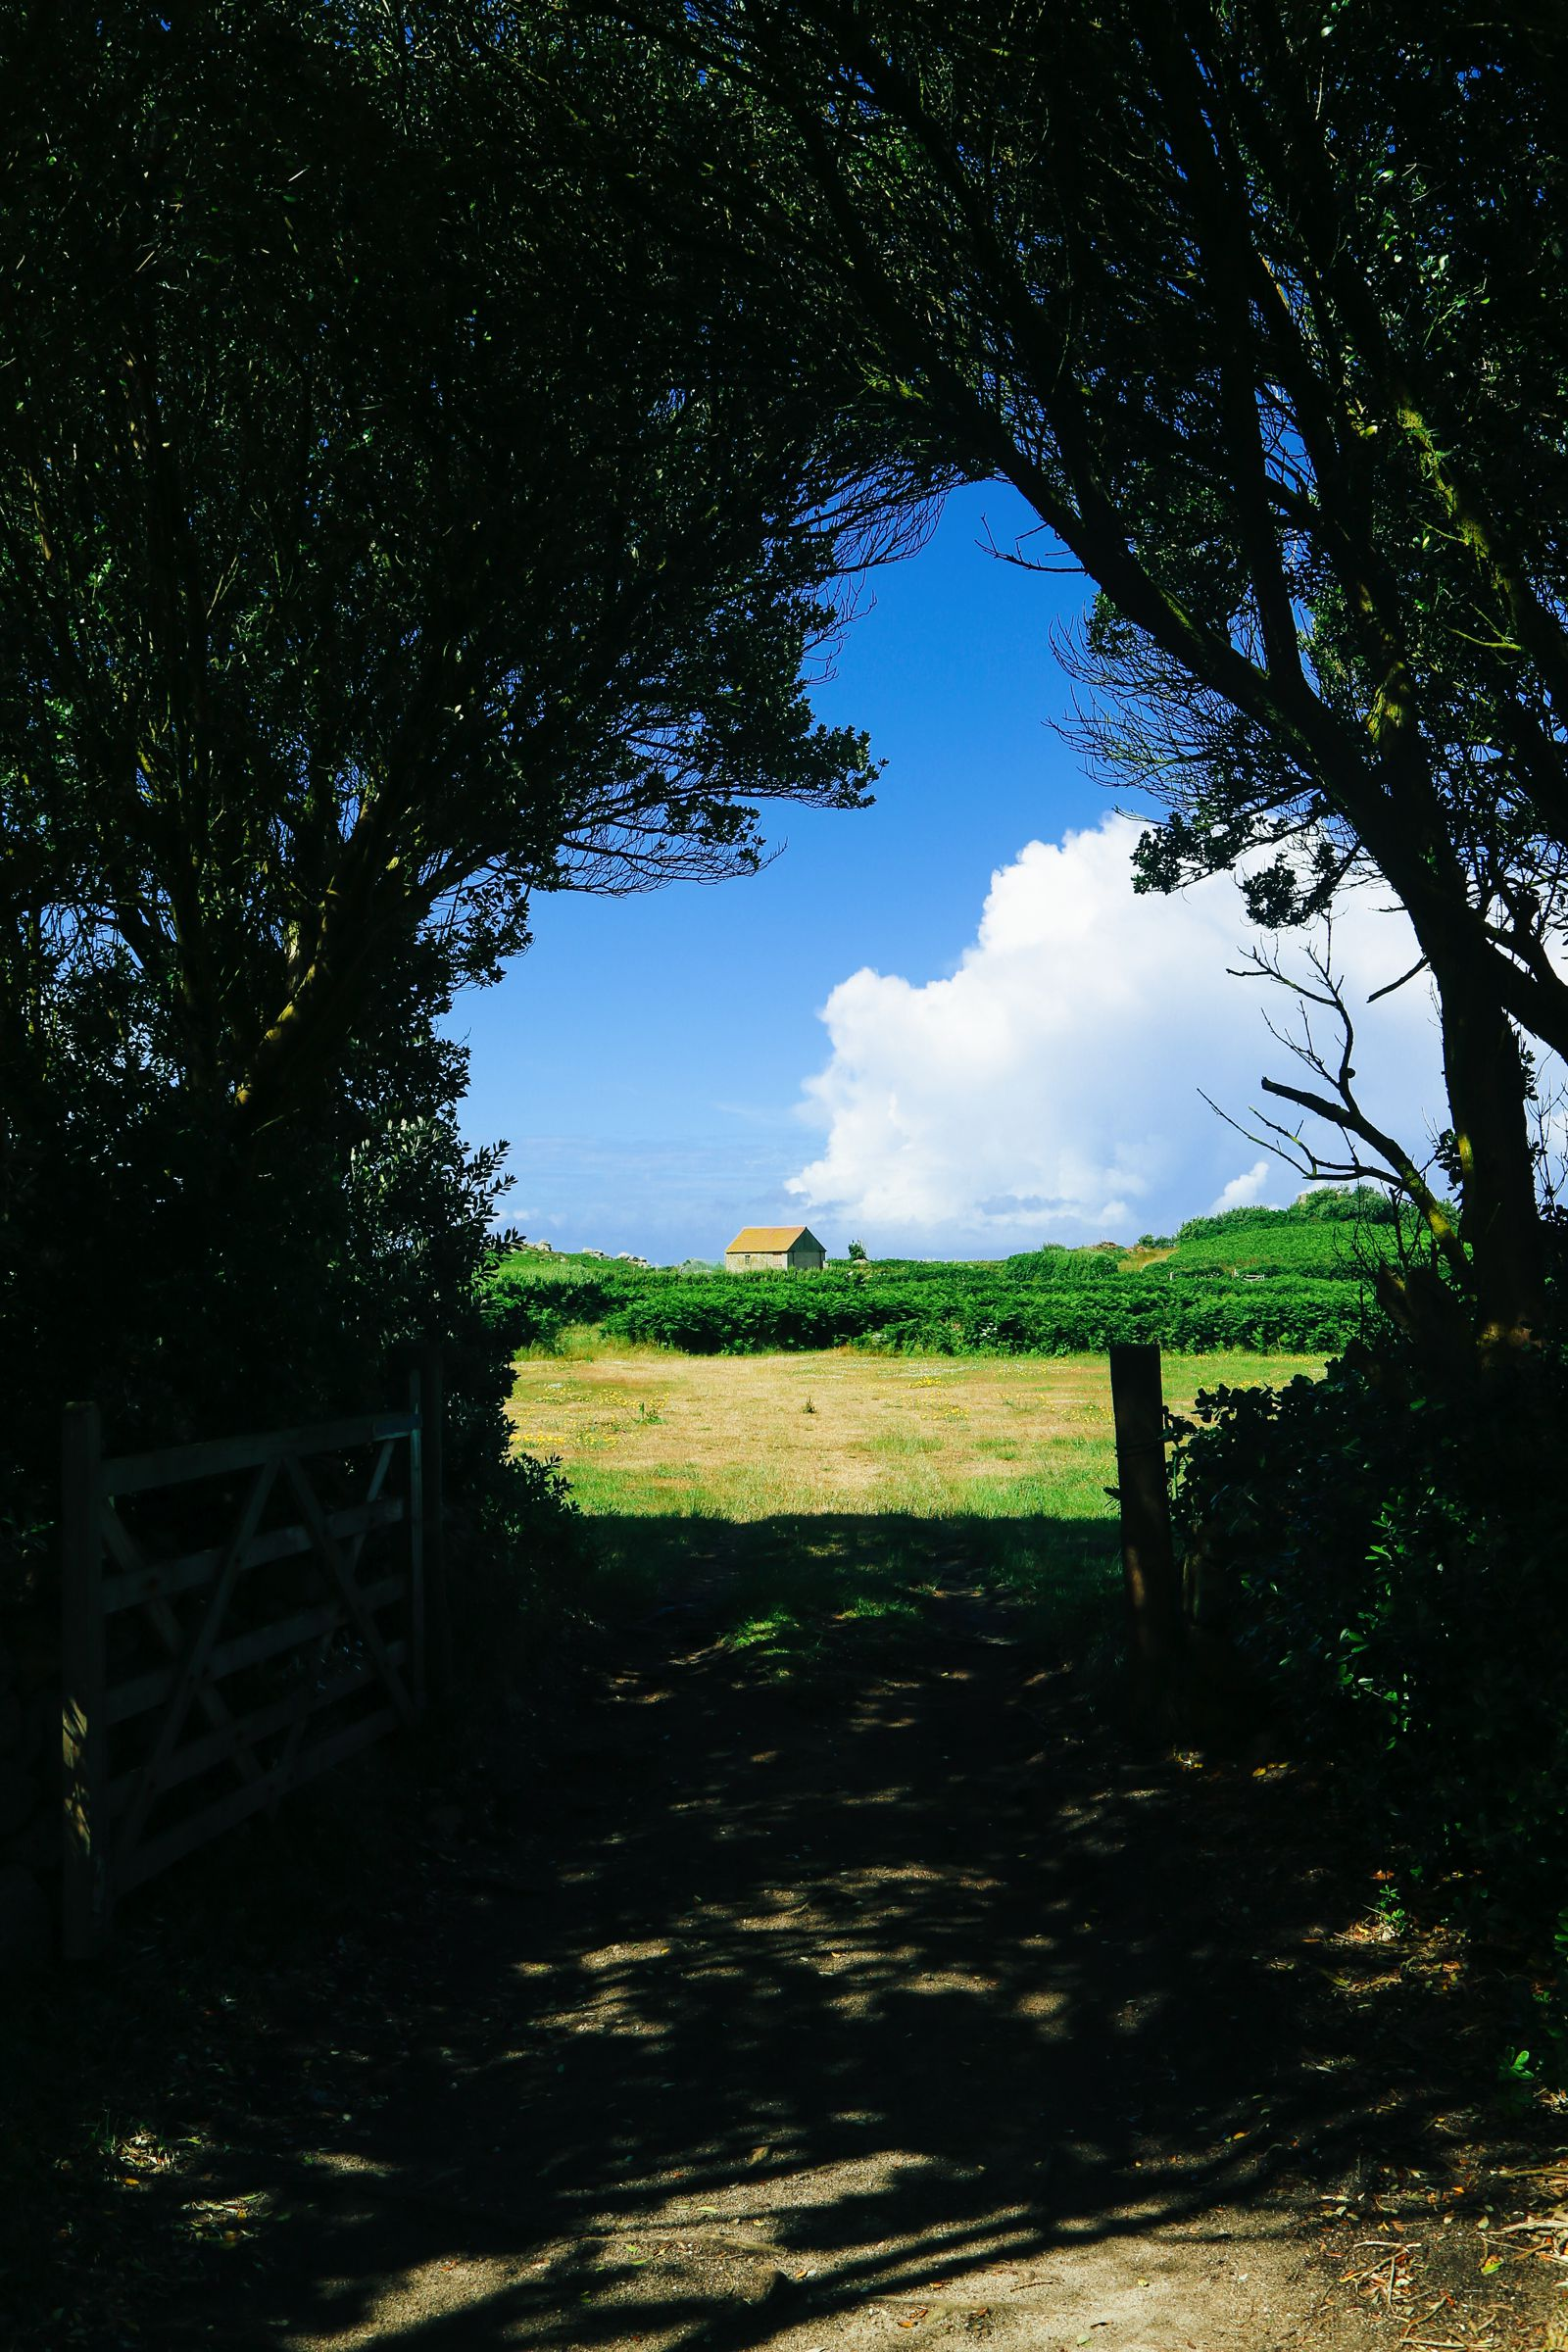 Kayaking in Bryher, Honesty Boxes and Tropical Island Hues... In Bryher Island, Isles of Scilly, UK (14)